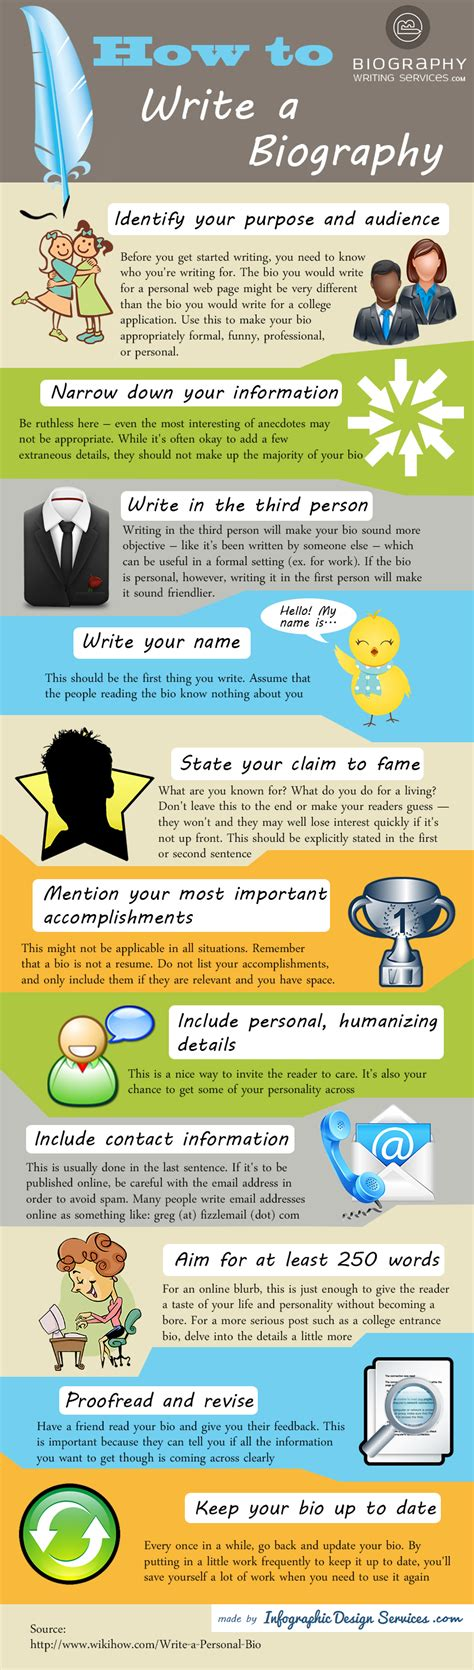 infographic for biography tips on writing a biography ucollect infographics